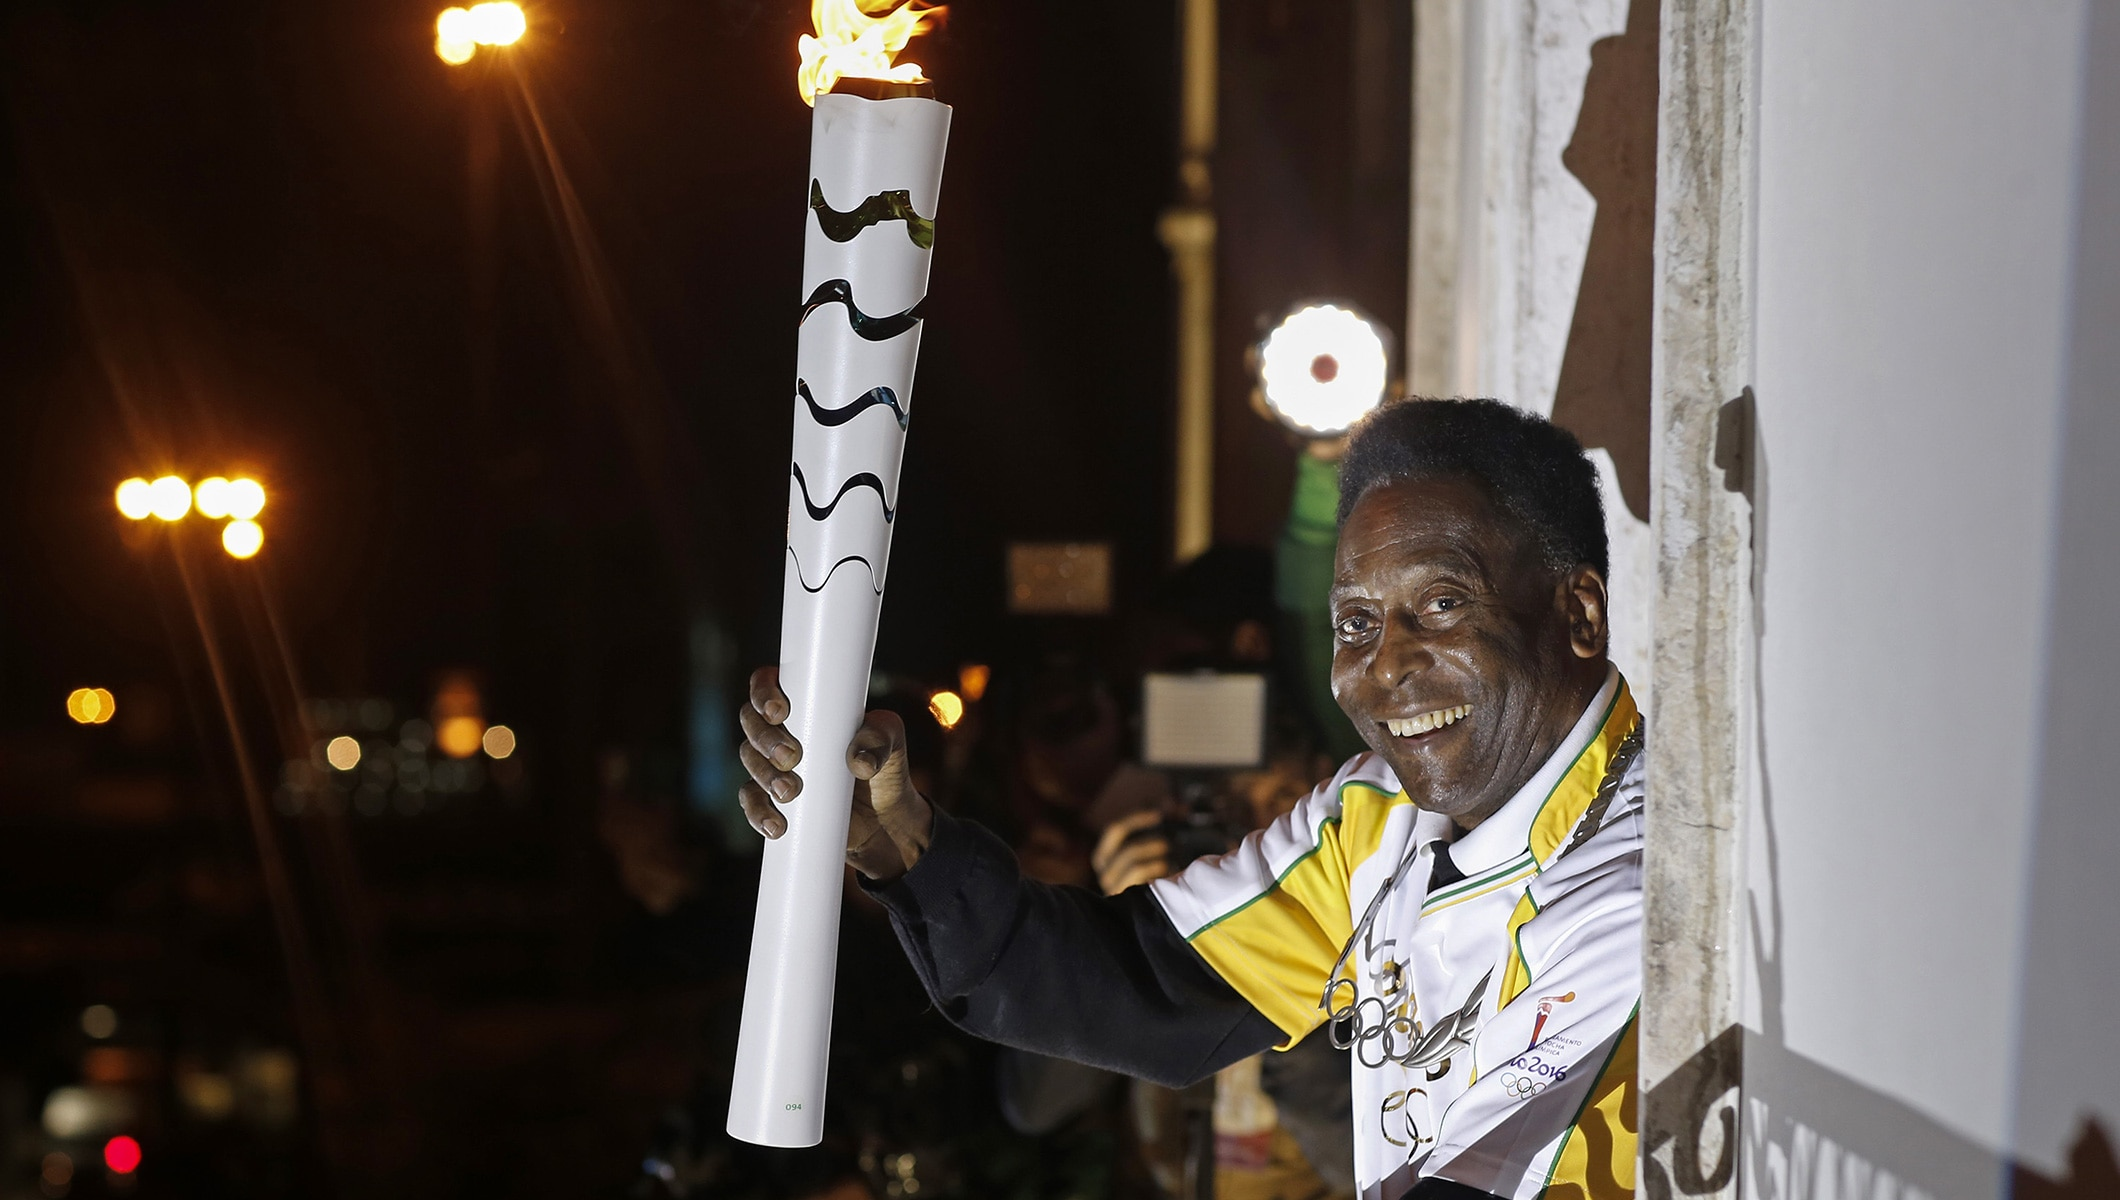 Rio 2016 Olympic Torch Relay - Day 81